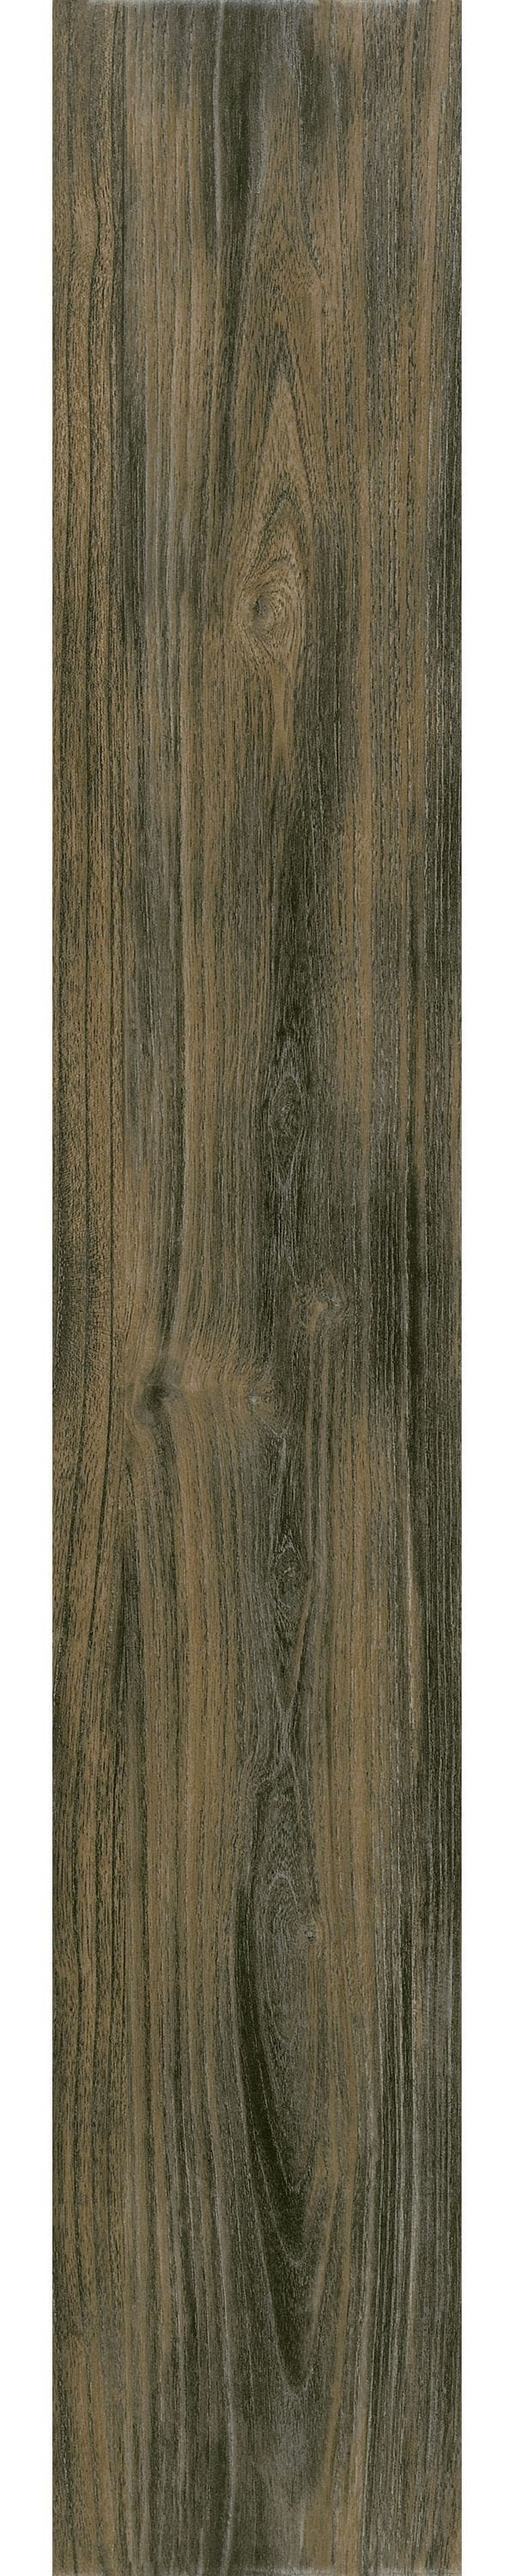 Armstrong Coastal Living Patina Weathered